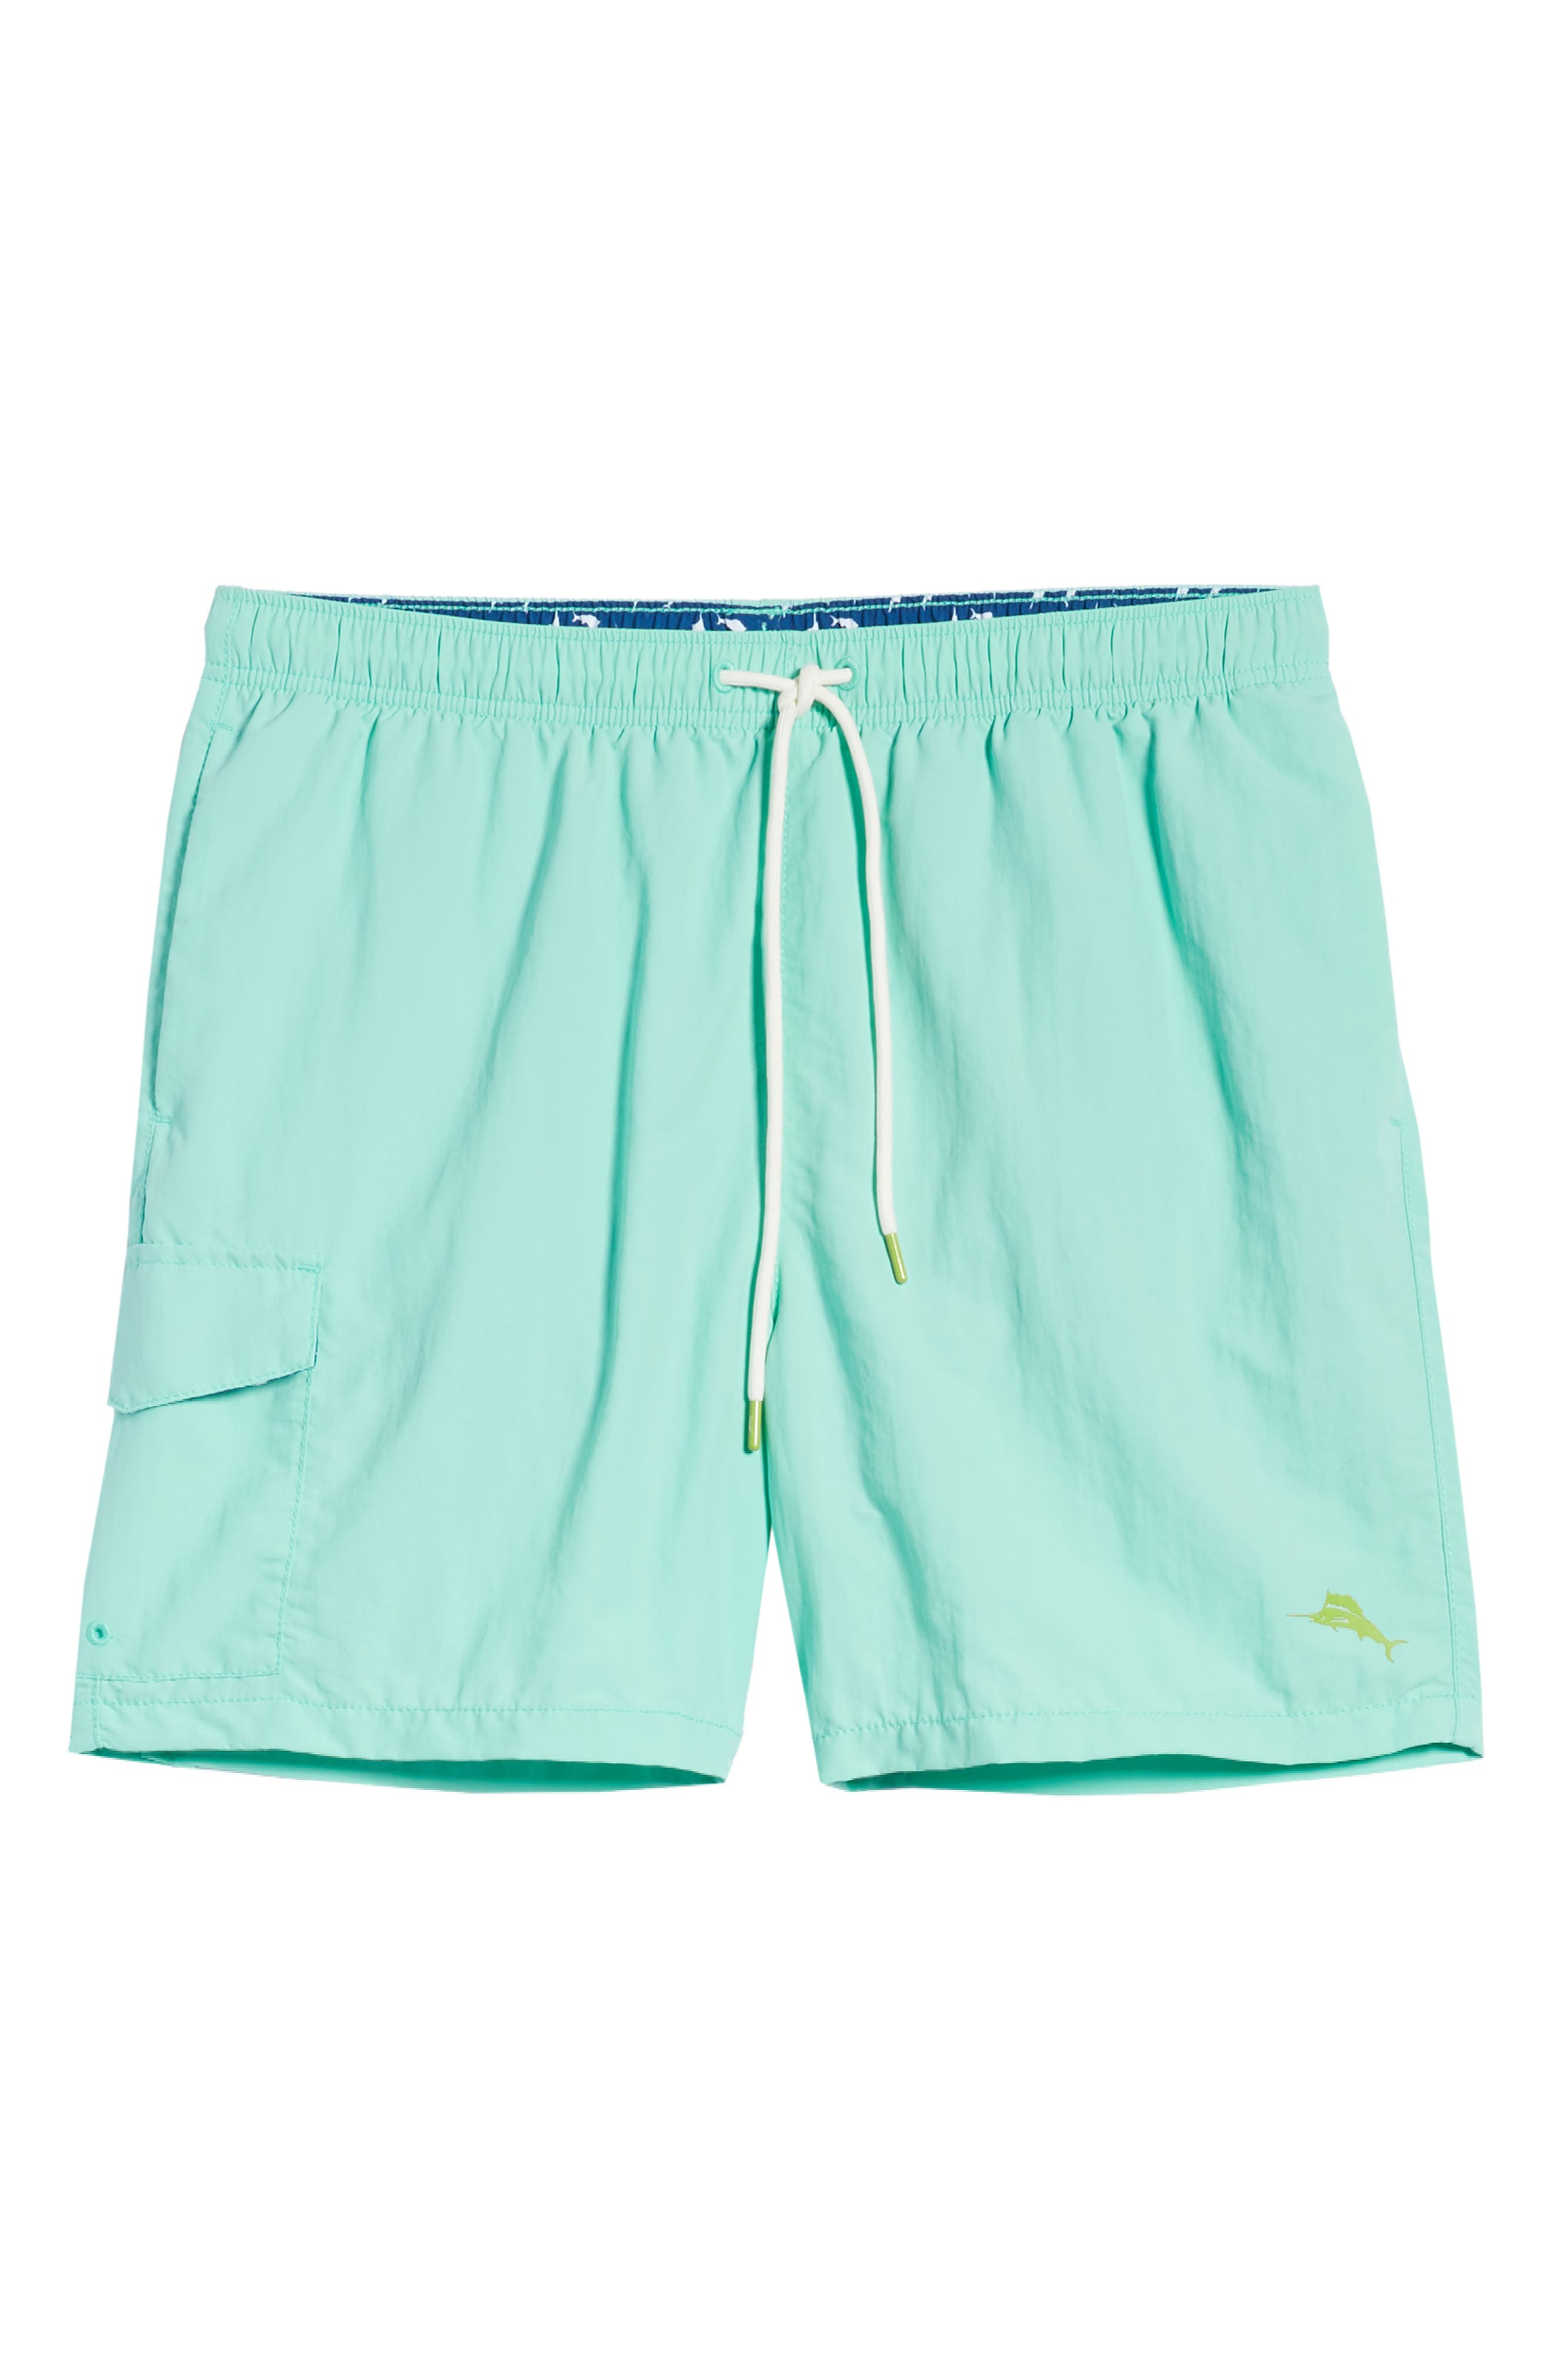 Naples Coast Swim Trunks,                             Alternate thumbnail 6, color,                             302